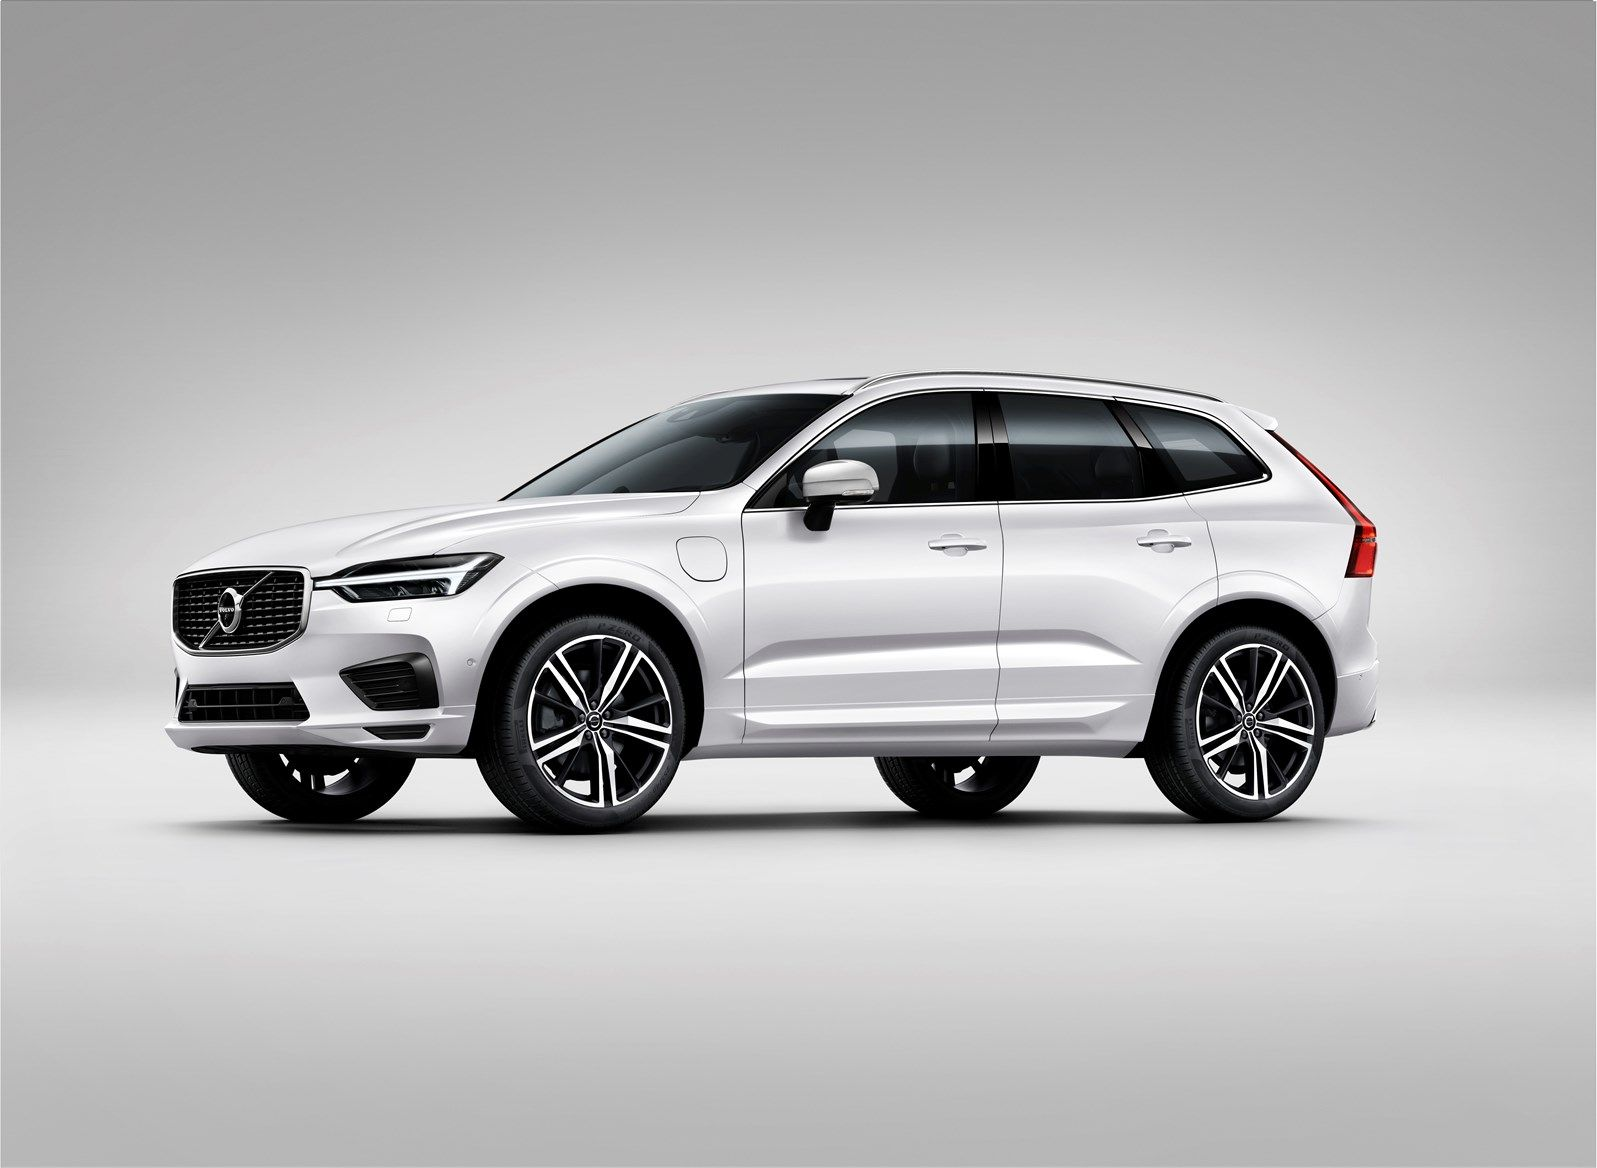 Volvo v60 cross country review 2015 parkers - All New Volvo Xc60 Cranks Up The Style Parkers